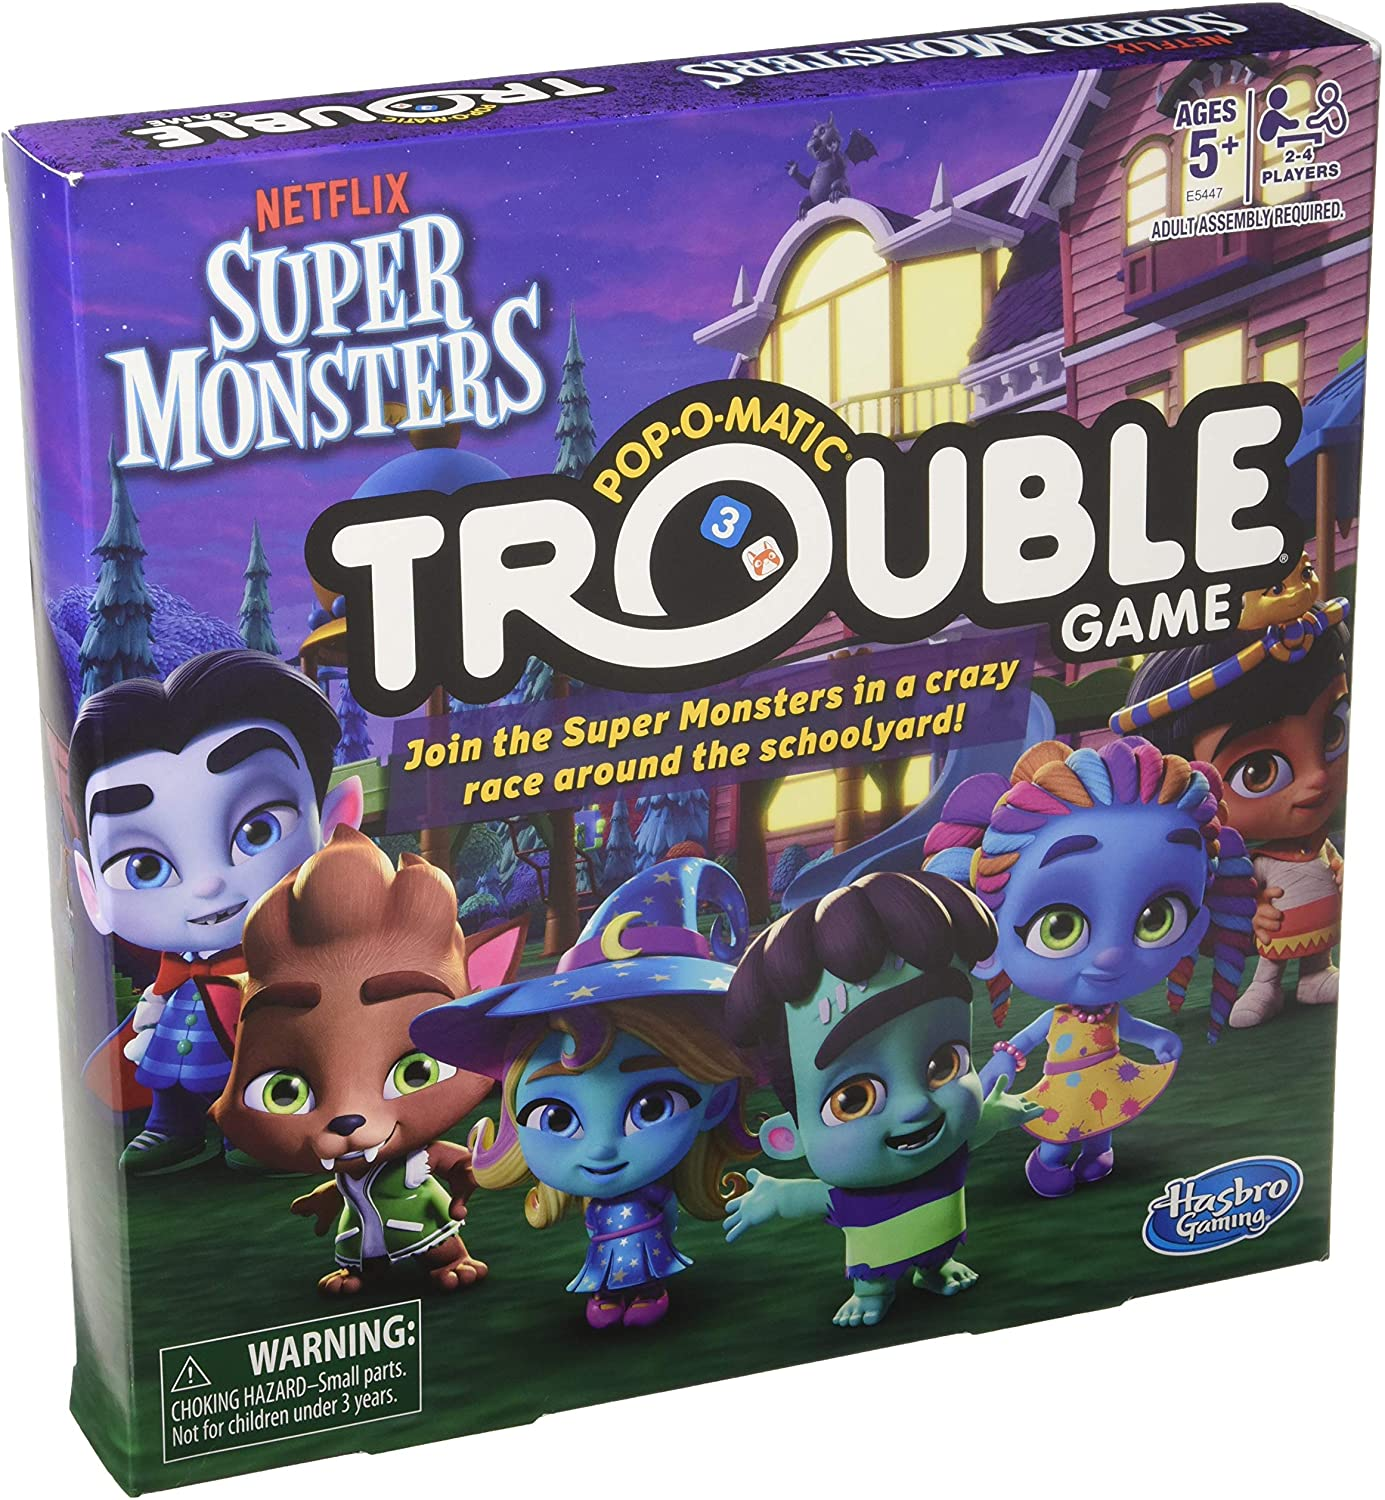 Amazon Com Hasbro Games Trouble Netflix Super Monsters Edition Board Game For Kids Ages 5 Toys Games